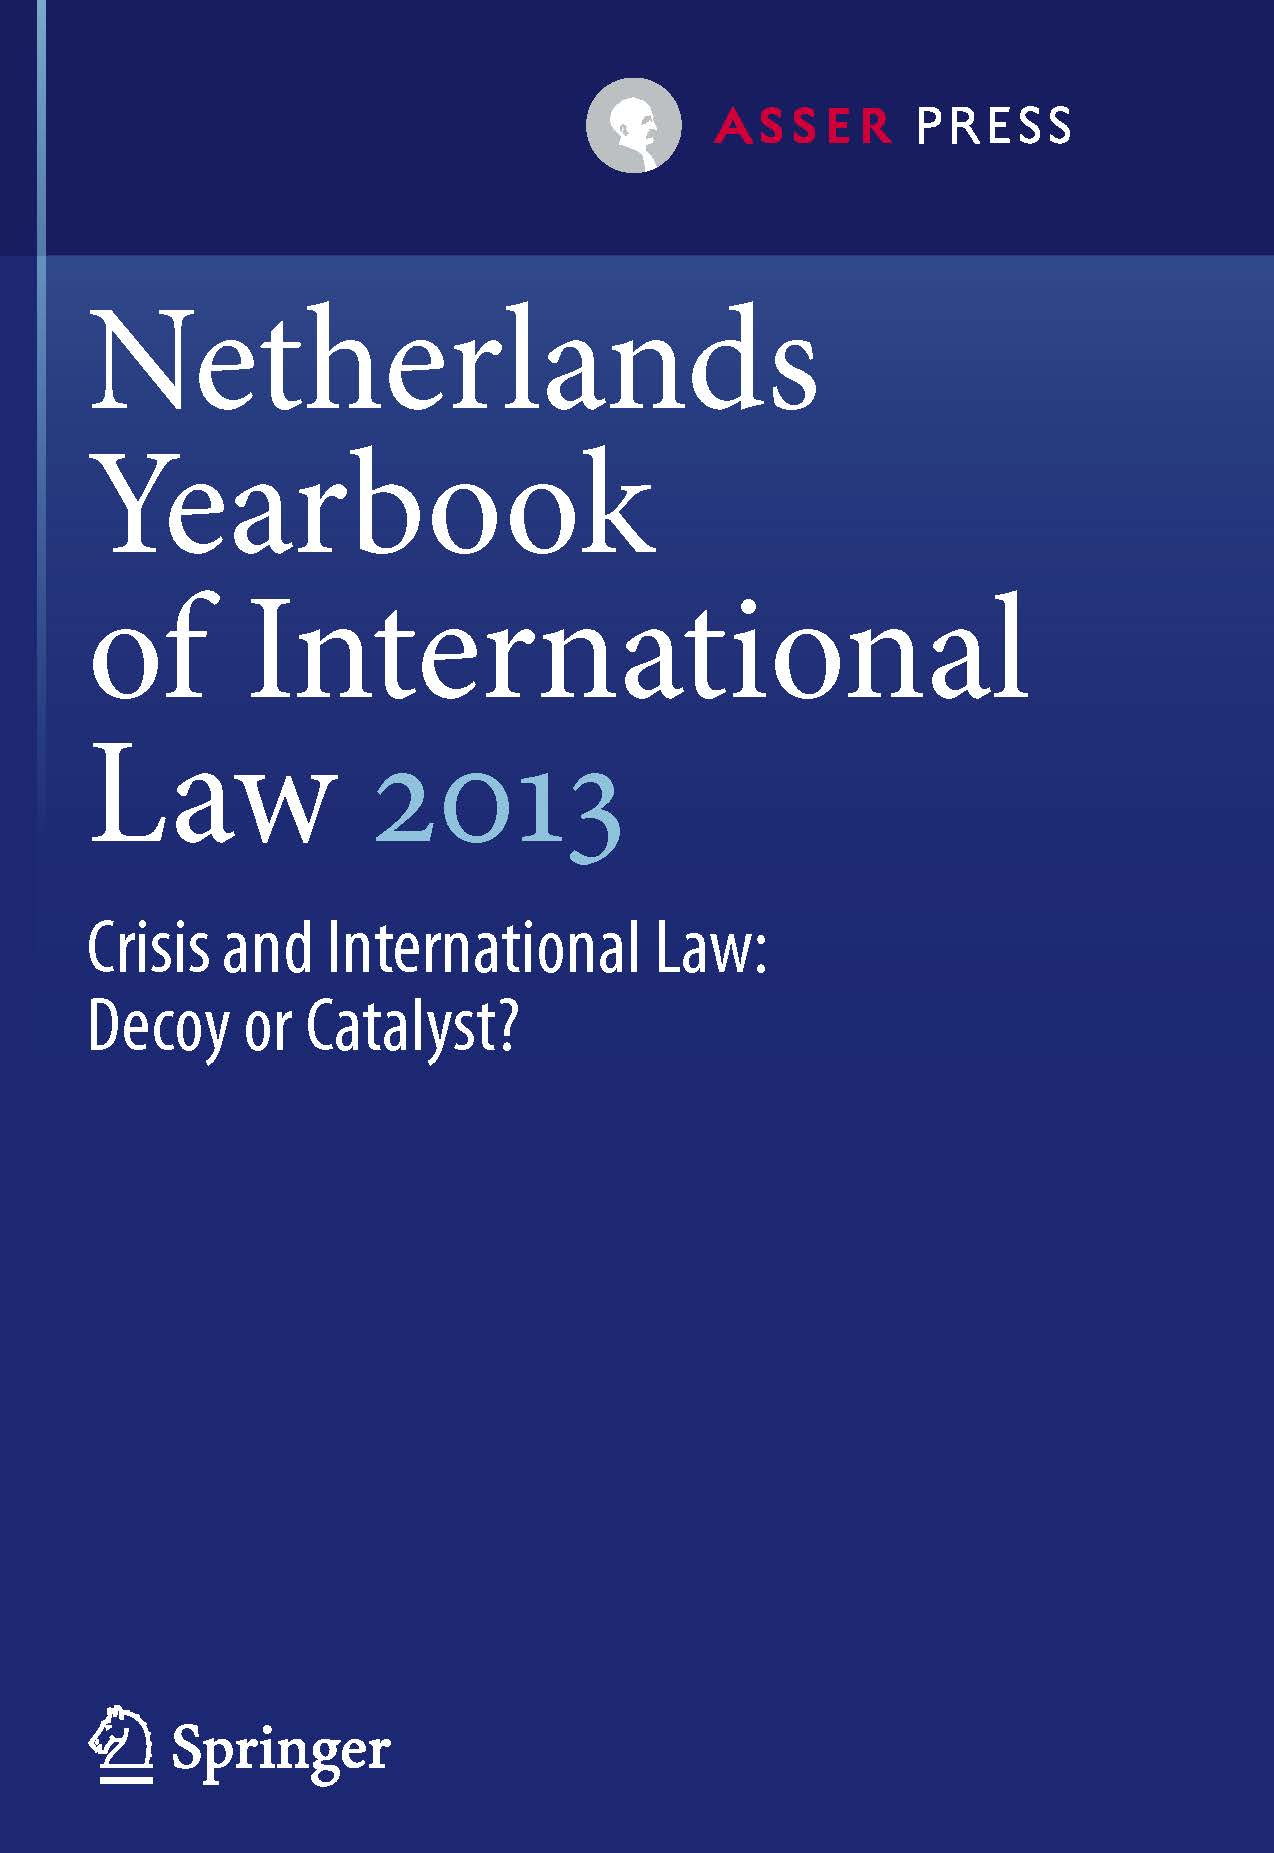 Netherlands Yearbook of International Law - Volume 44, 2013 - Crisis and International Law: Decoy or Catalyst?